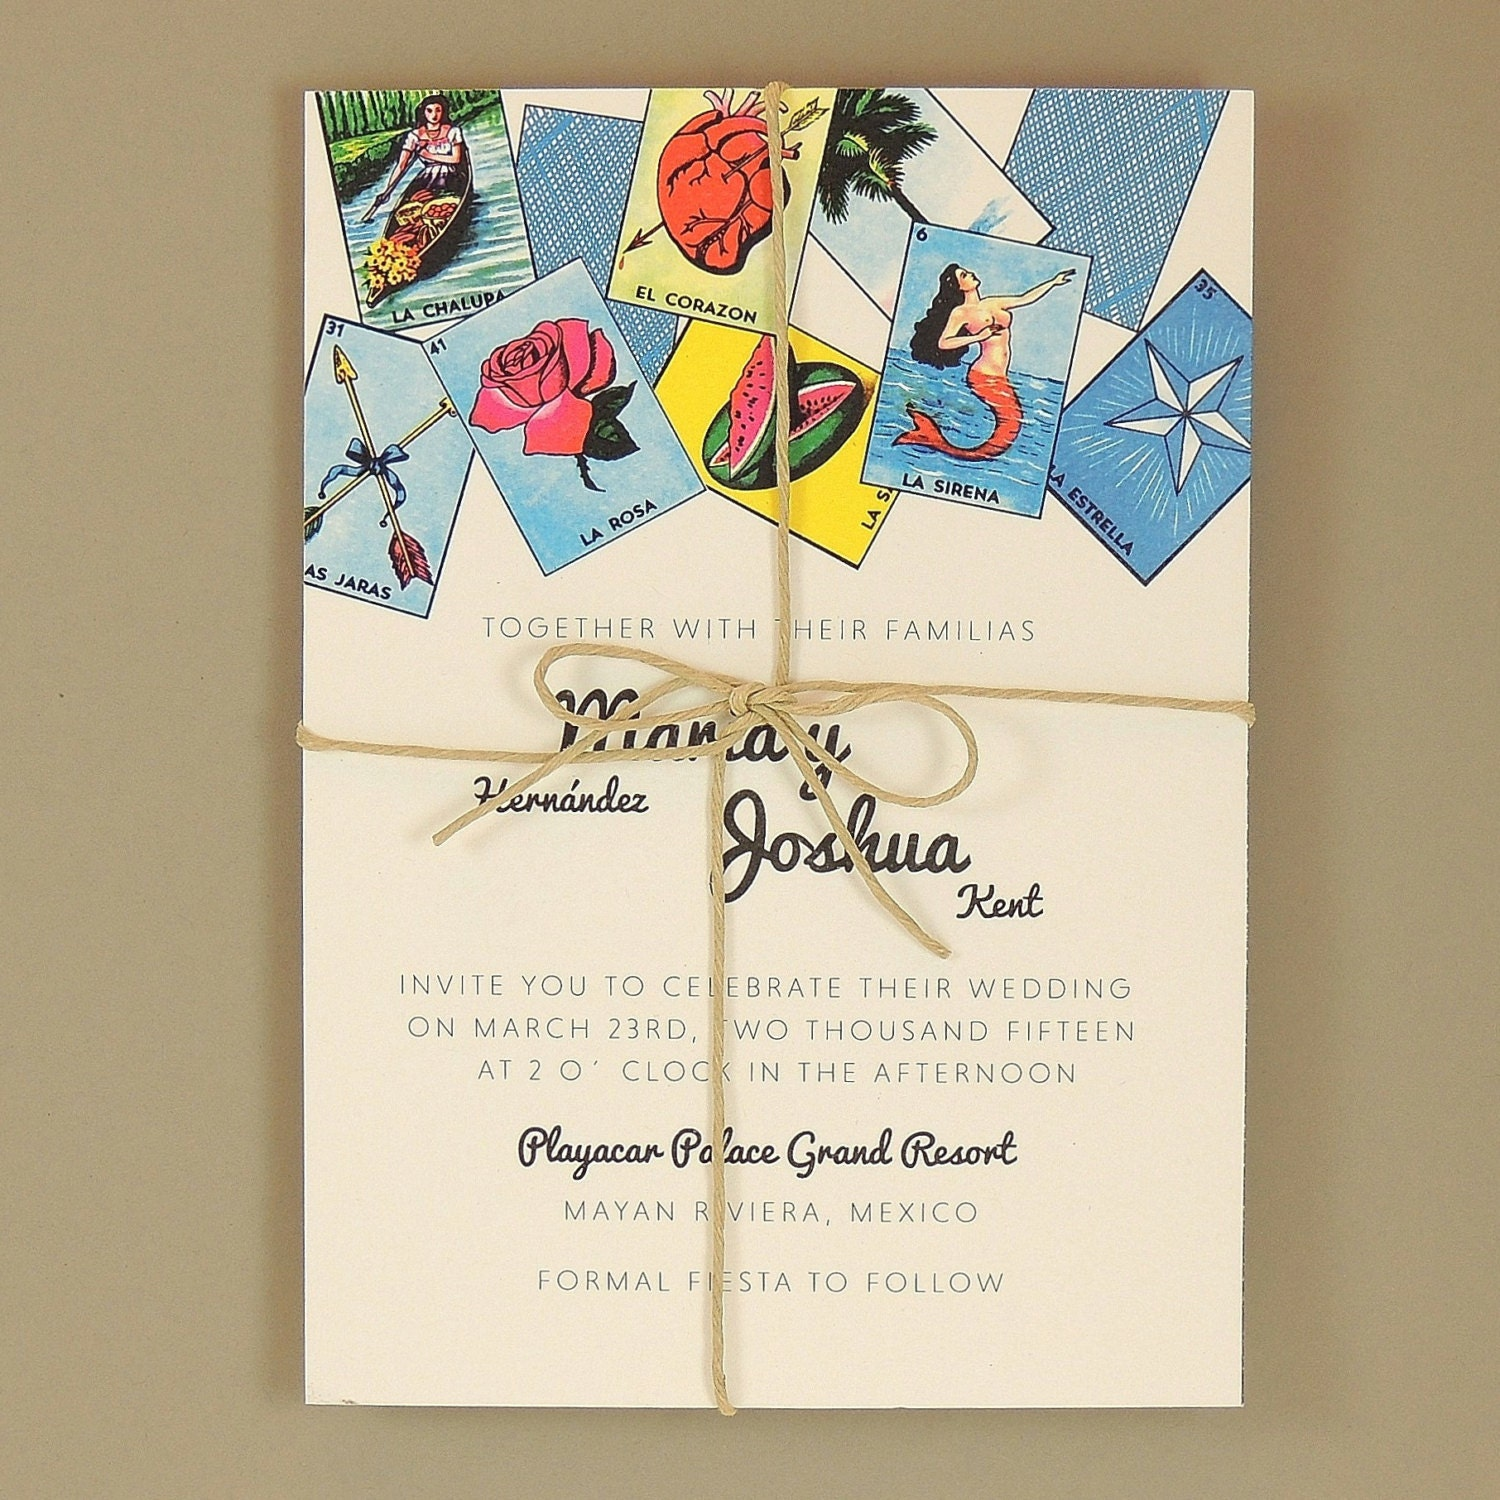 Mexican Themed Wedding Invitations for adorable invitations design